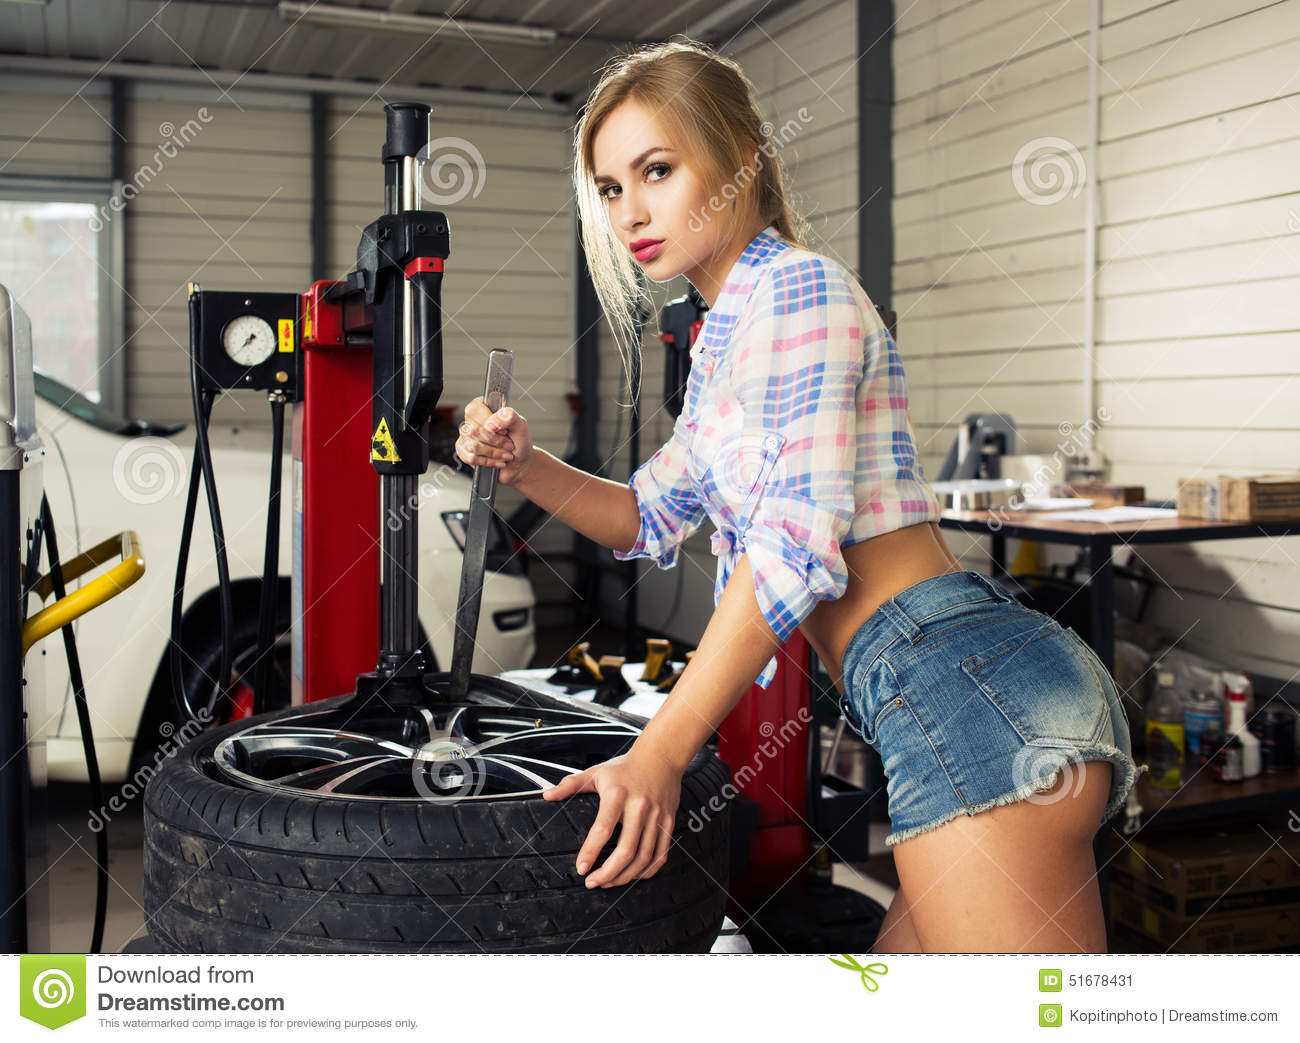 girl-mechanic-replace-tires-wheels-sexy-shorts-garage-51678431.jpg